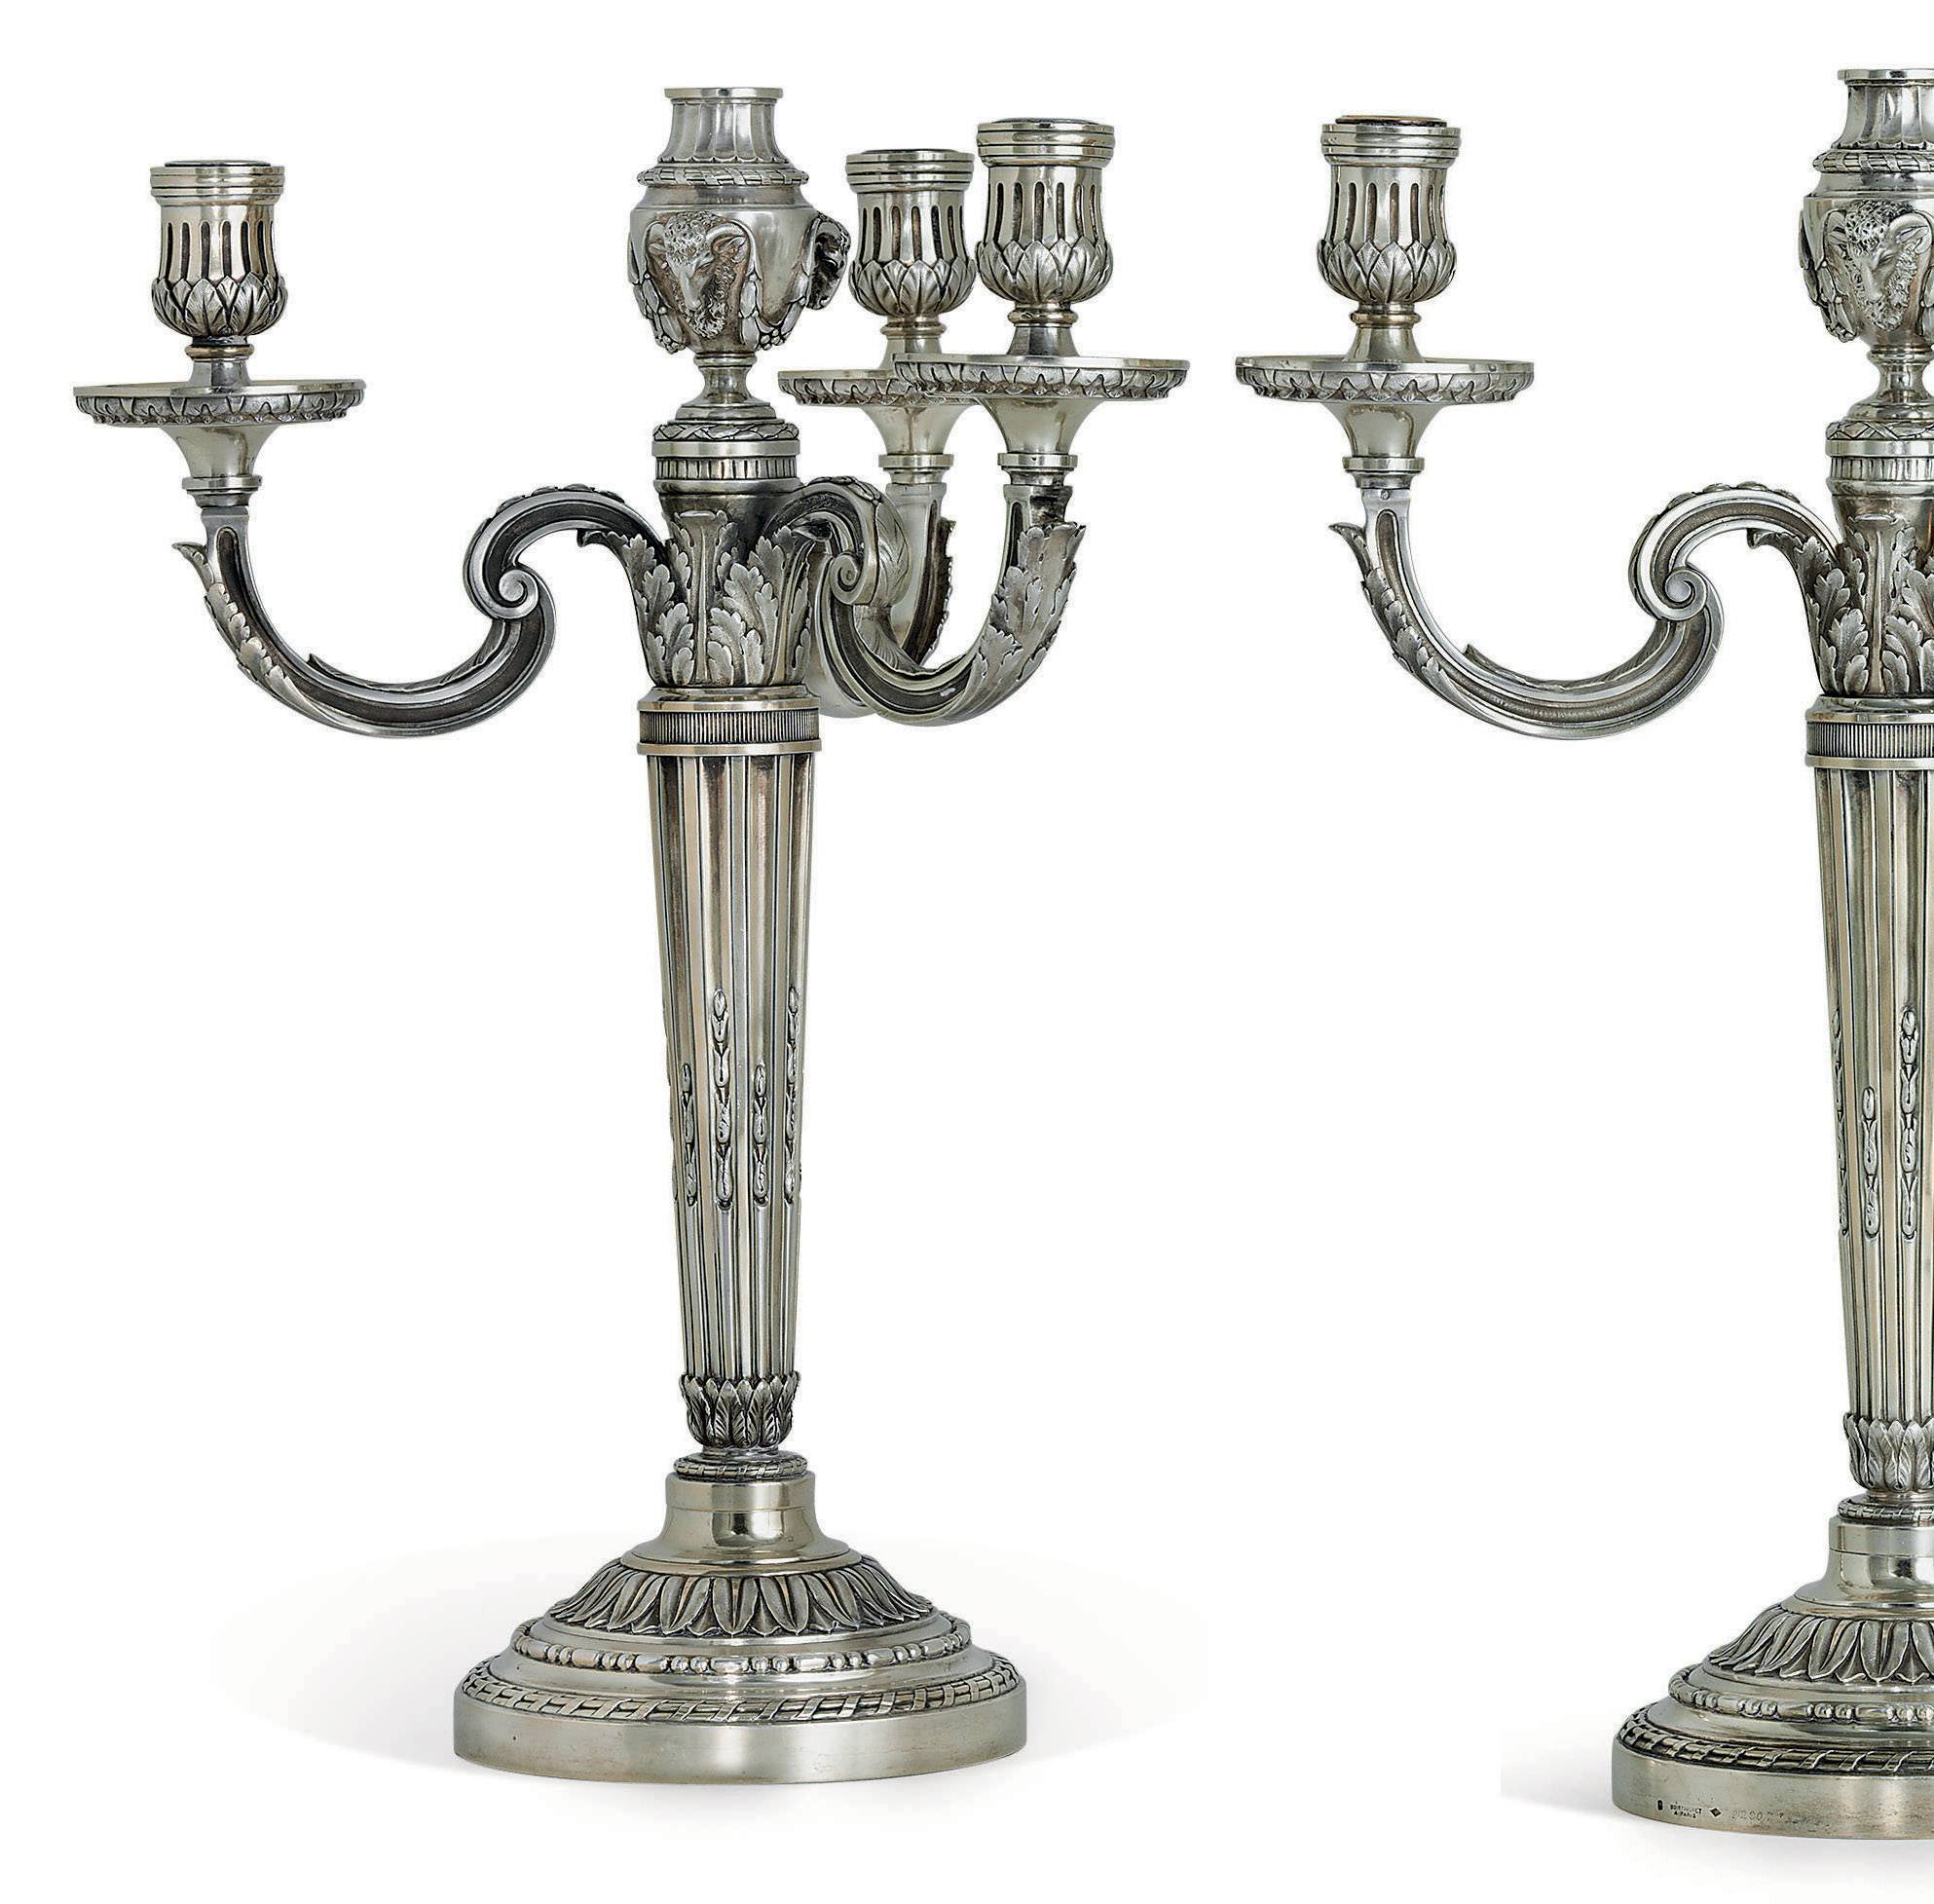 A PAIR OF FRENCH SILVER-GILT FOUR-LIGHT CANDELABRA